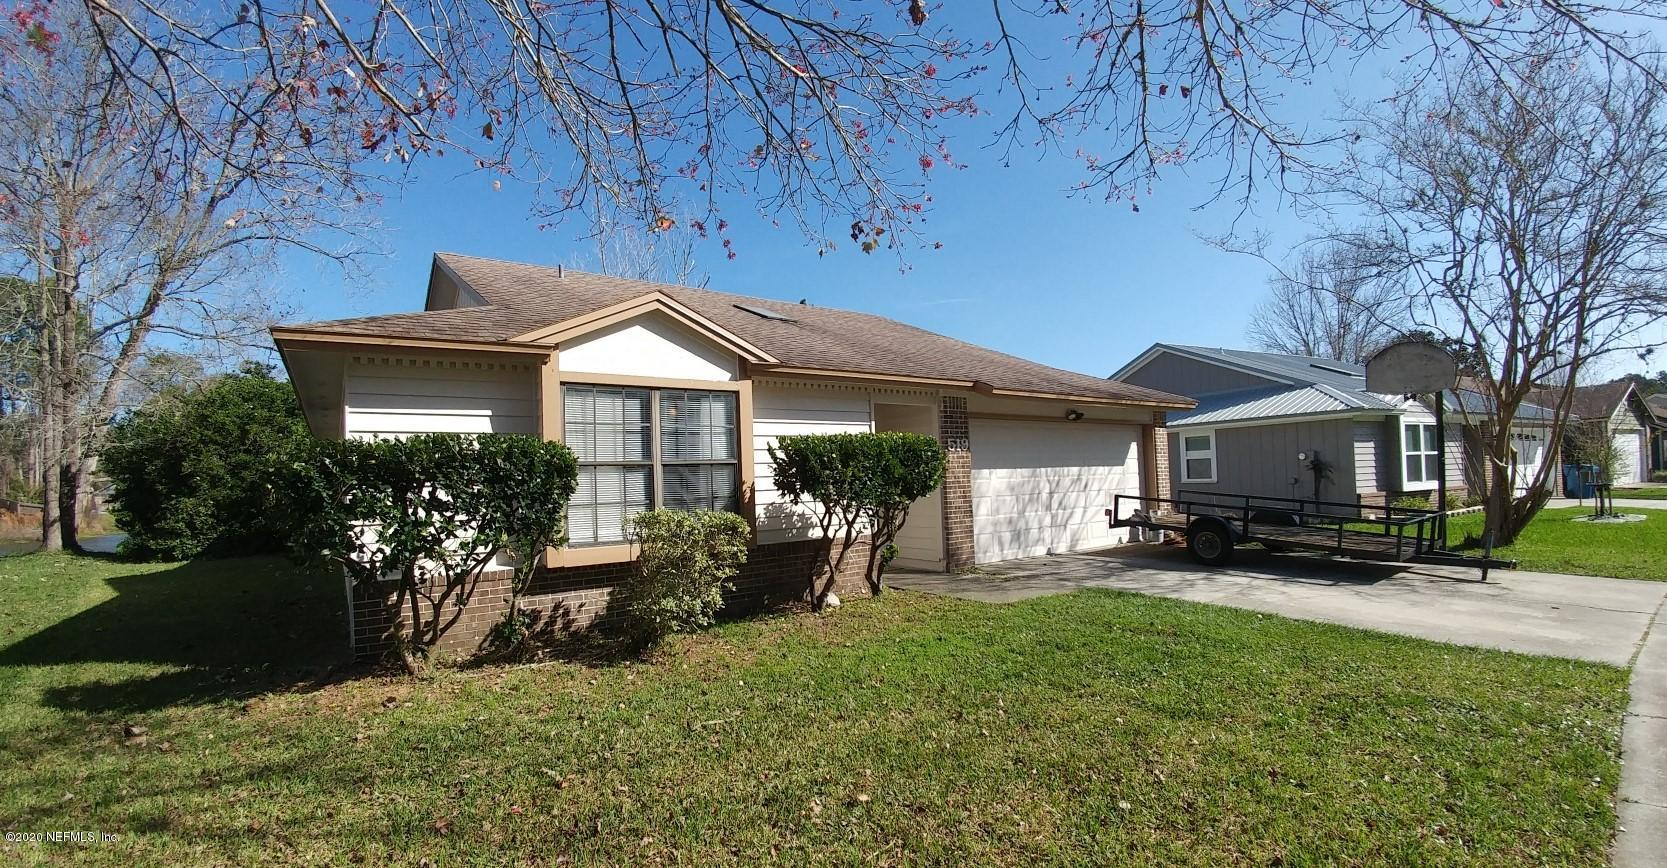 519 BLUE WHALE, JACKSONVILLE, FLORIDA 32218, 3 Bedrooms Bedrooms, ,2 BathroomsBathrooms,Residential Income,For sale,BLUE WHALE,1033757